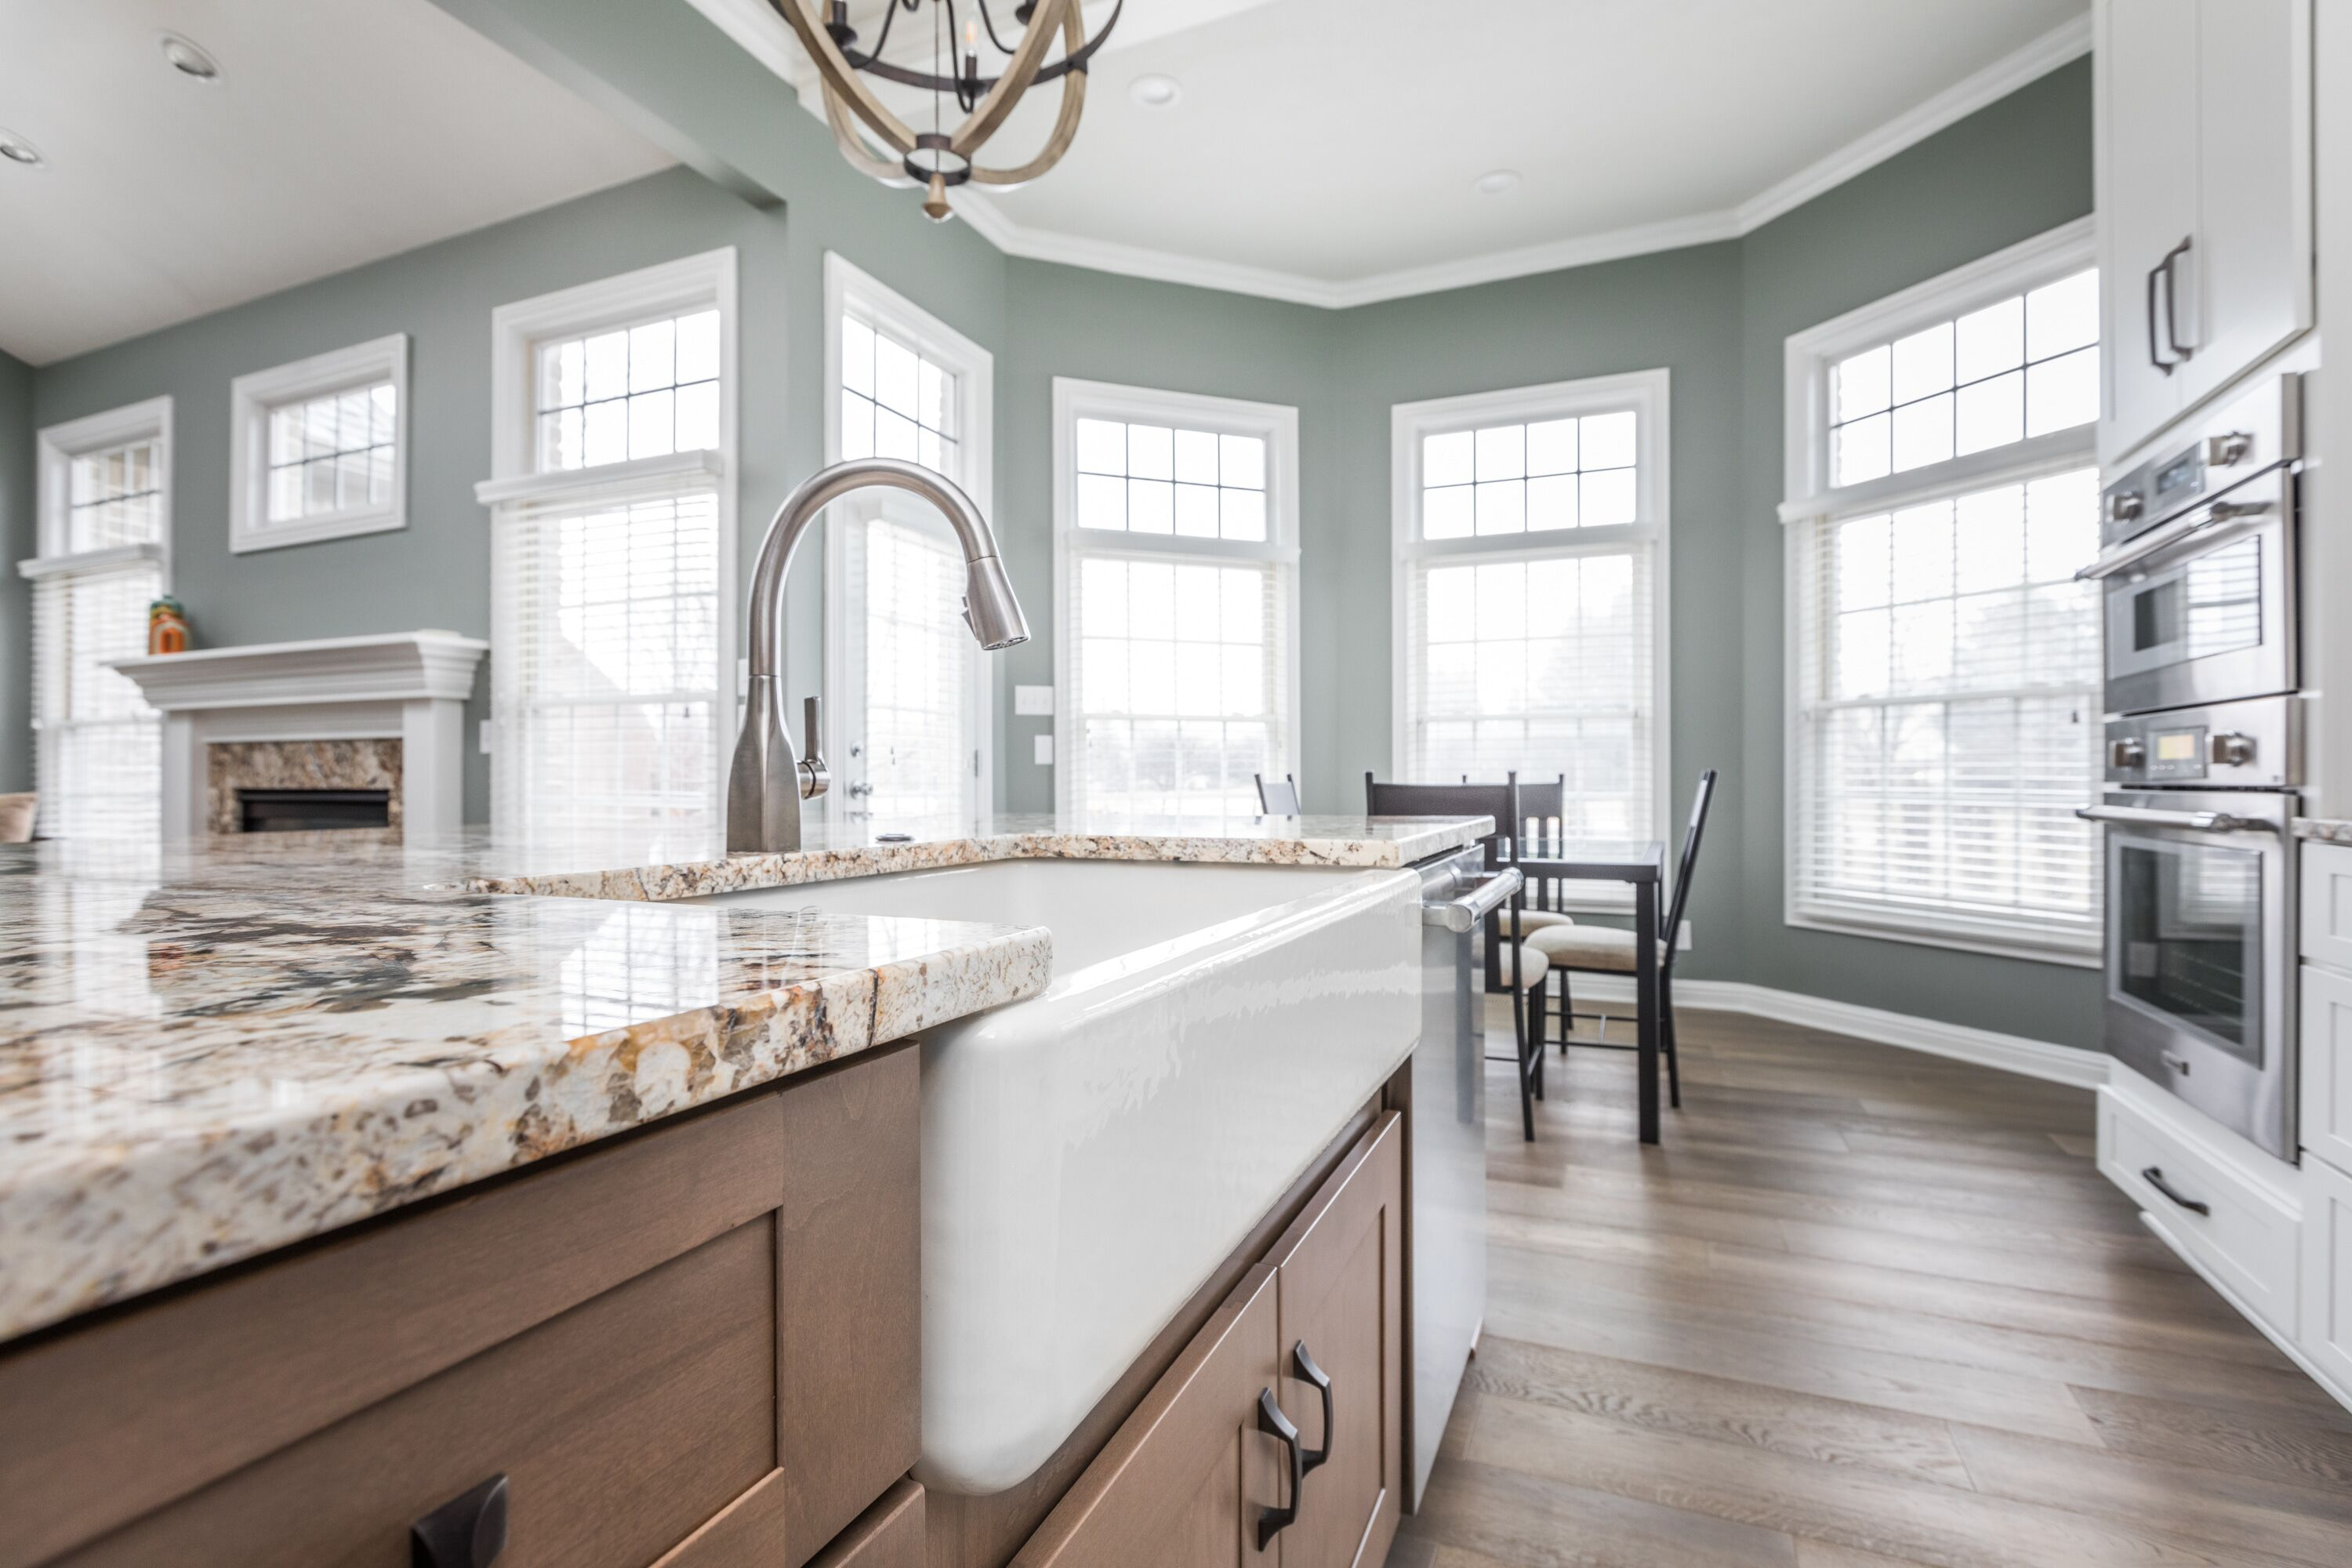 How to Prioritize Your Remodeling Projects